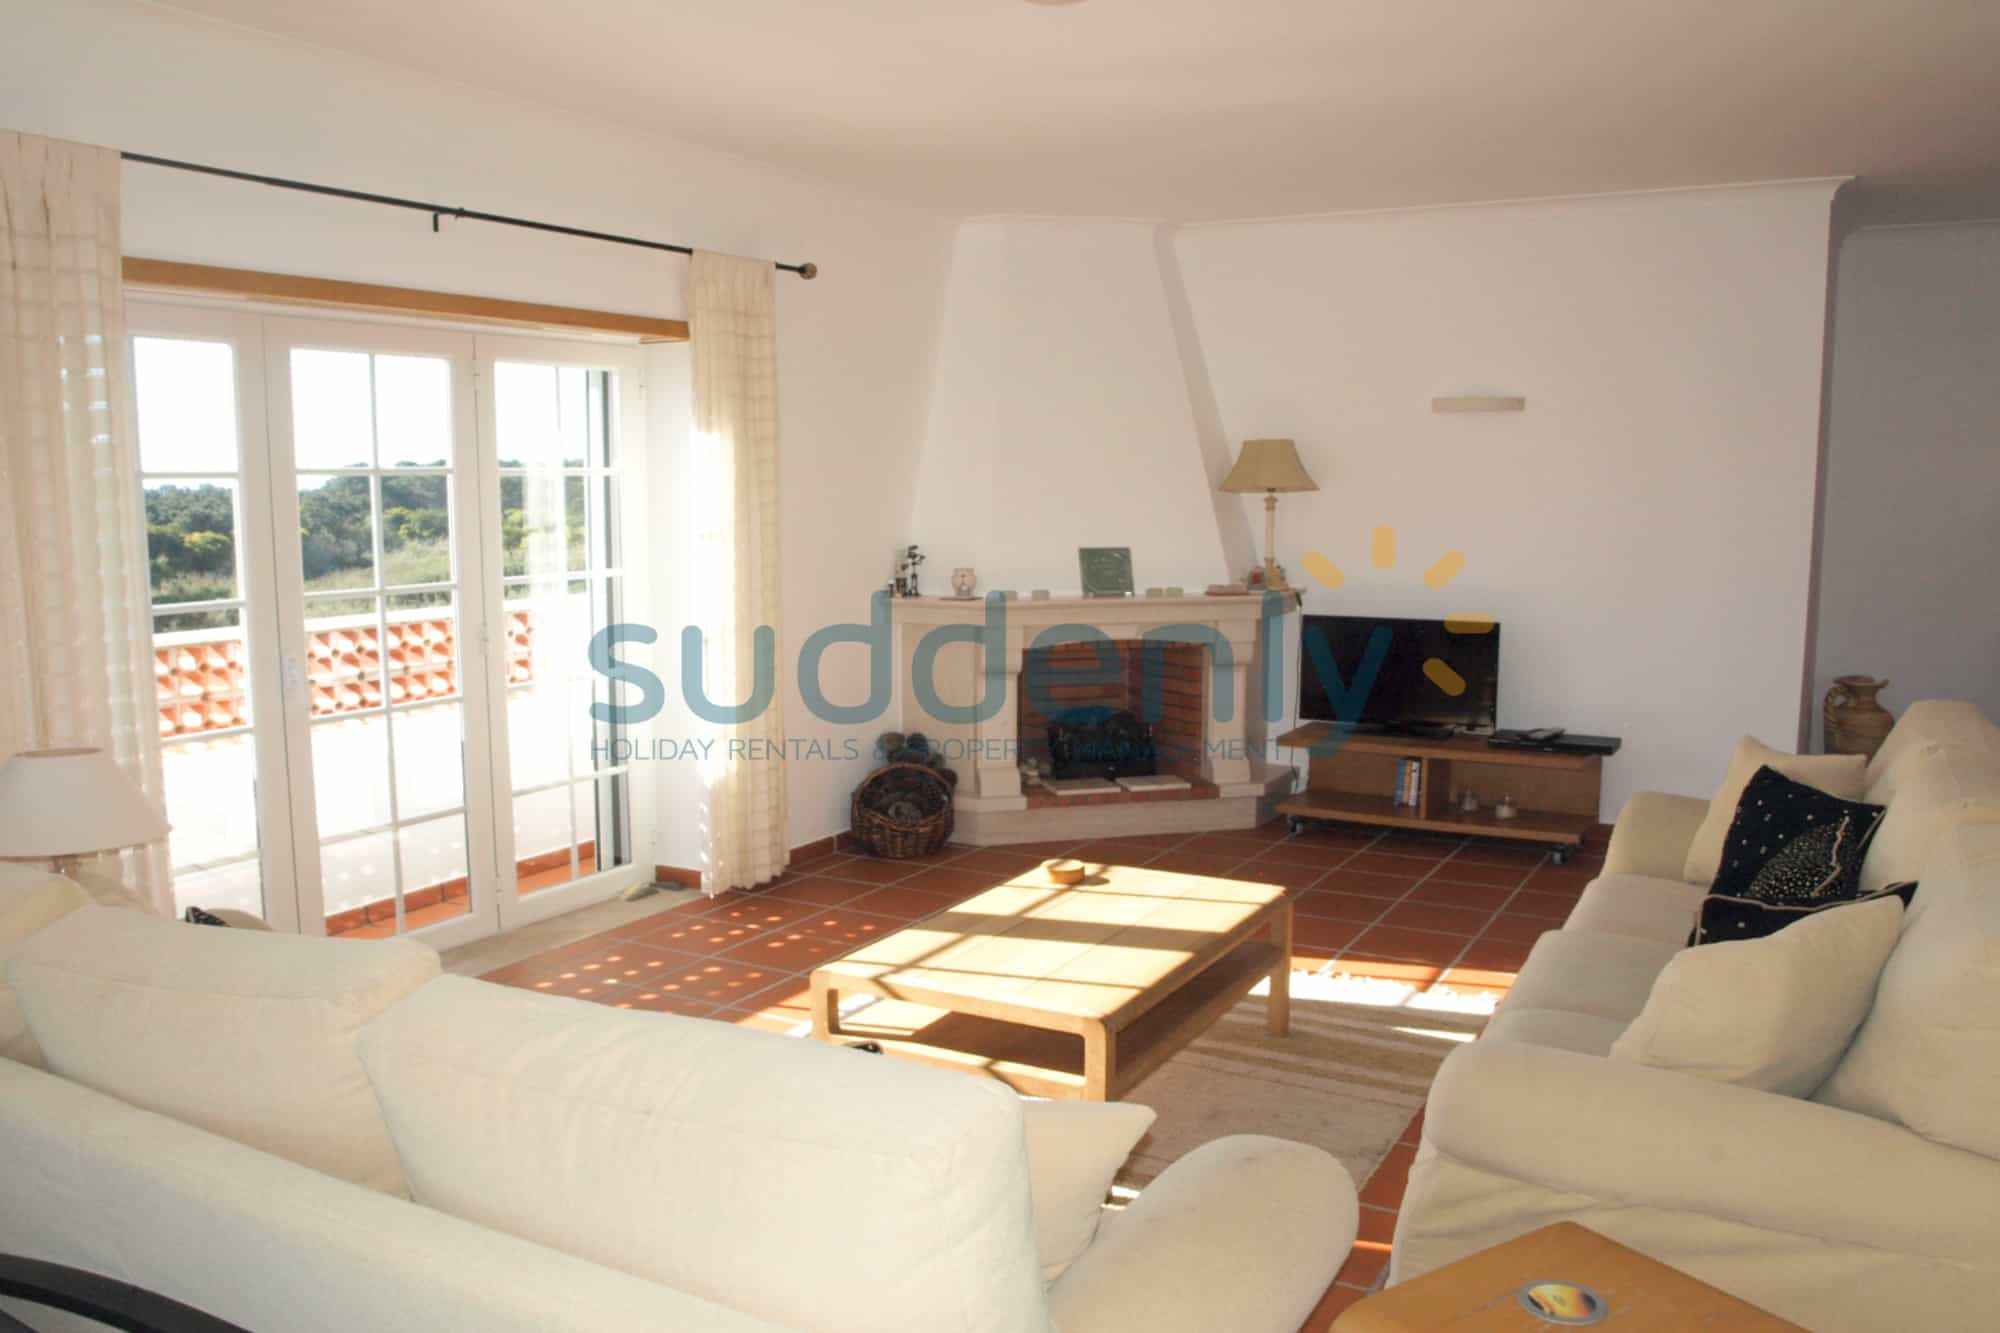 Holiday Rentals in Praia D'El Rey 103